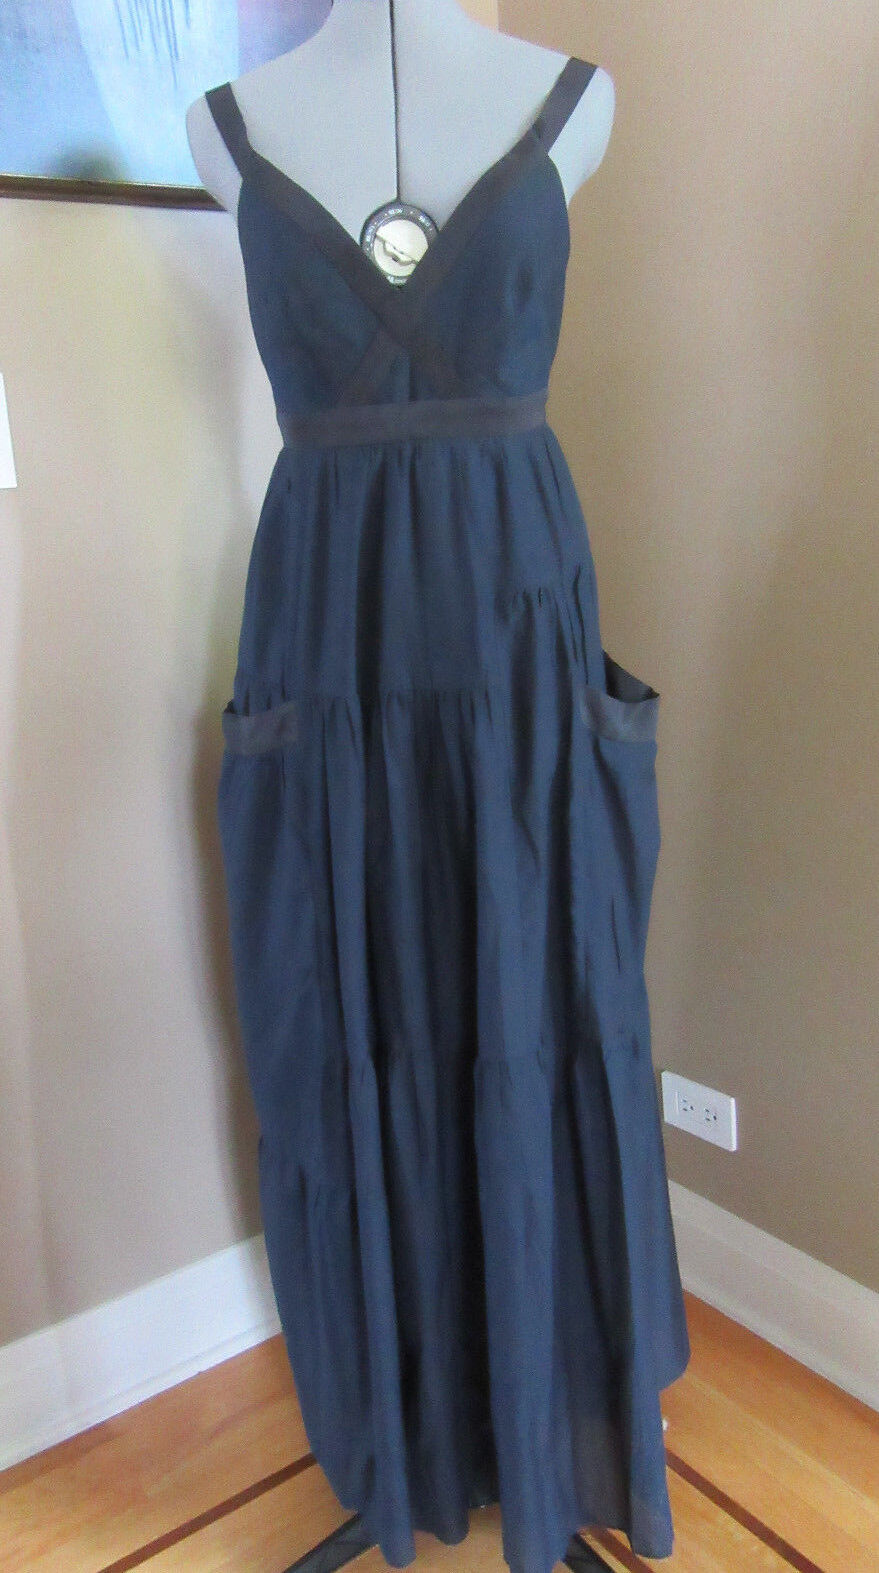 NWT  Marc by Marc Jacobs Tiered Cotton Silk Navy Maxi Dress Size 4